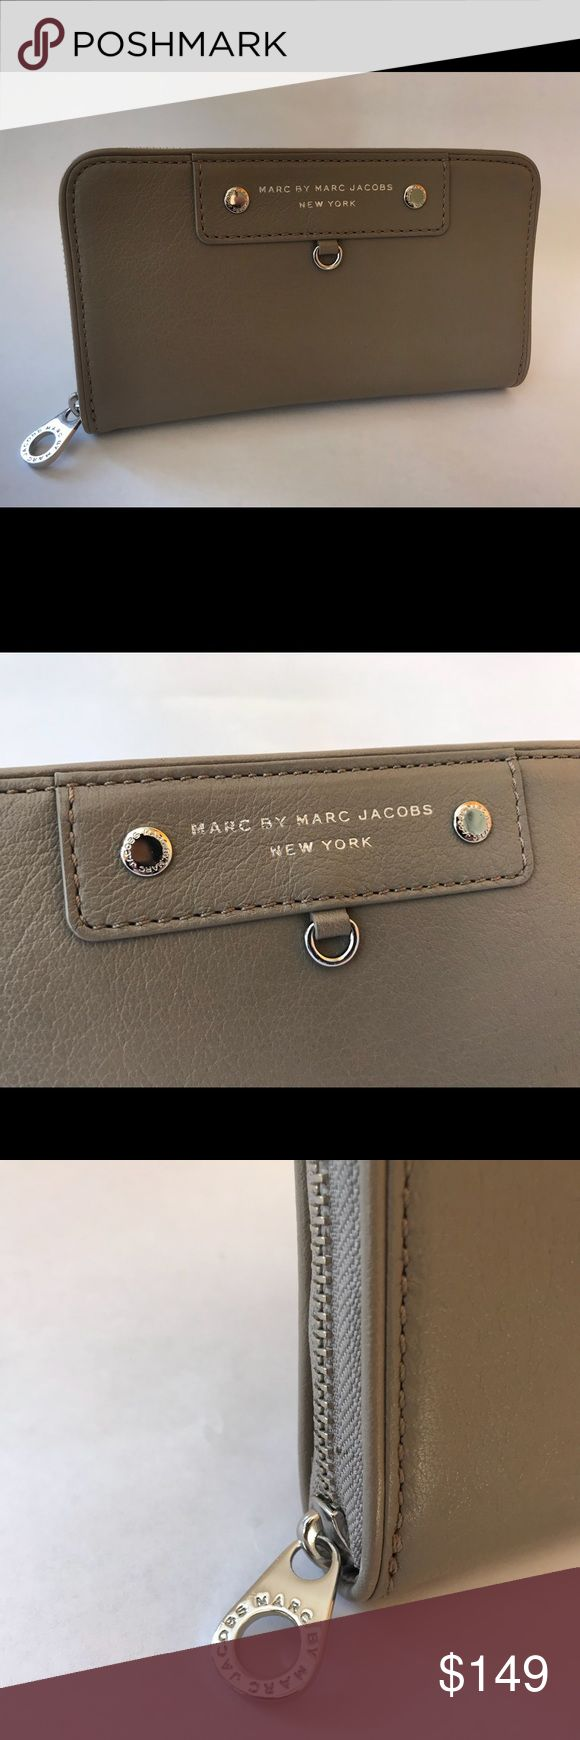 "Marc by Marc Jacobs Grey Zip Around Wallet Grey Marc by Marc Jacobs zip around wallet. Unused with original tag.   - Marc by Marc Jacobs saffiano leather organizer wallet. - Zip-around closure with metal pull. - Interior, one zip section; three open sections card holders. - Exterior, silver logo at top center. - 4.5""H x 8""W x 1""D.  Thanks for looking! Marc By Marc Jacobs Bags Wallets"